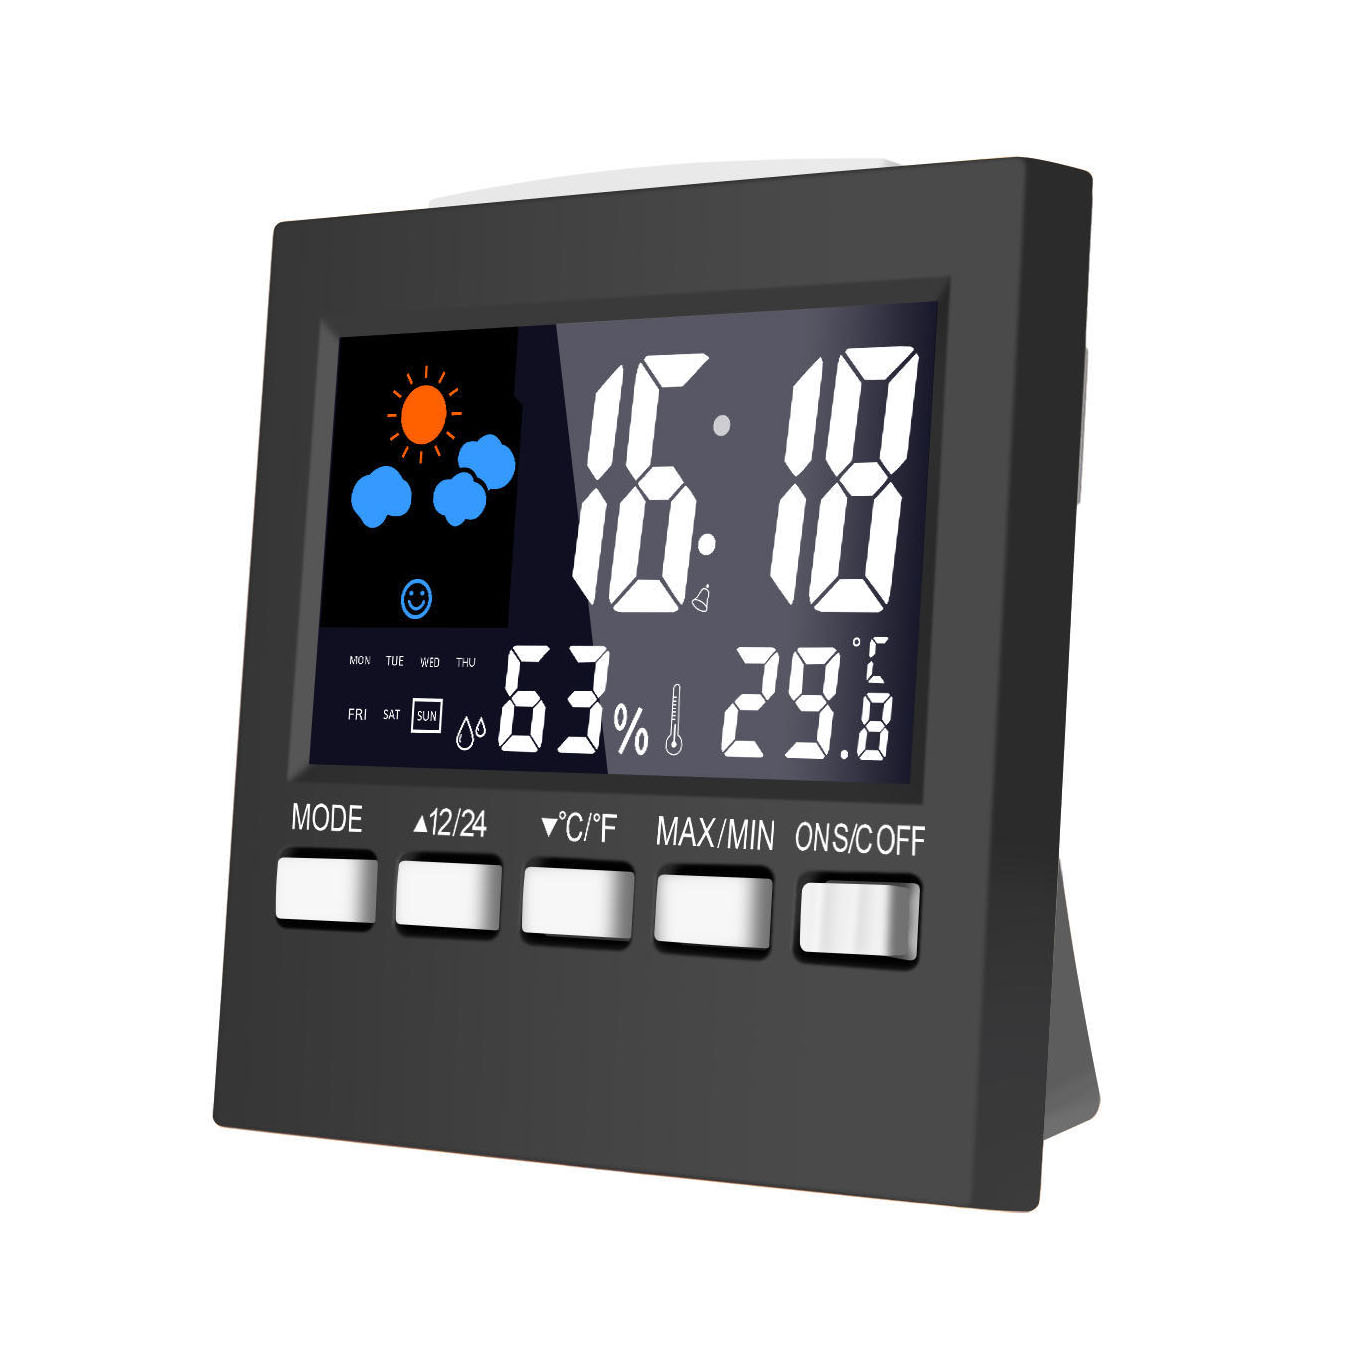 Loskii DC-003 Digital Wireless Hygrometer Therometer LED-projectie weerstation Alarm Klok